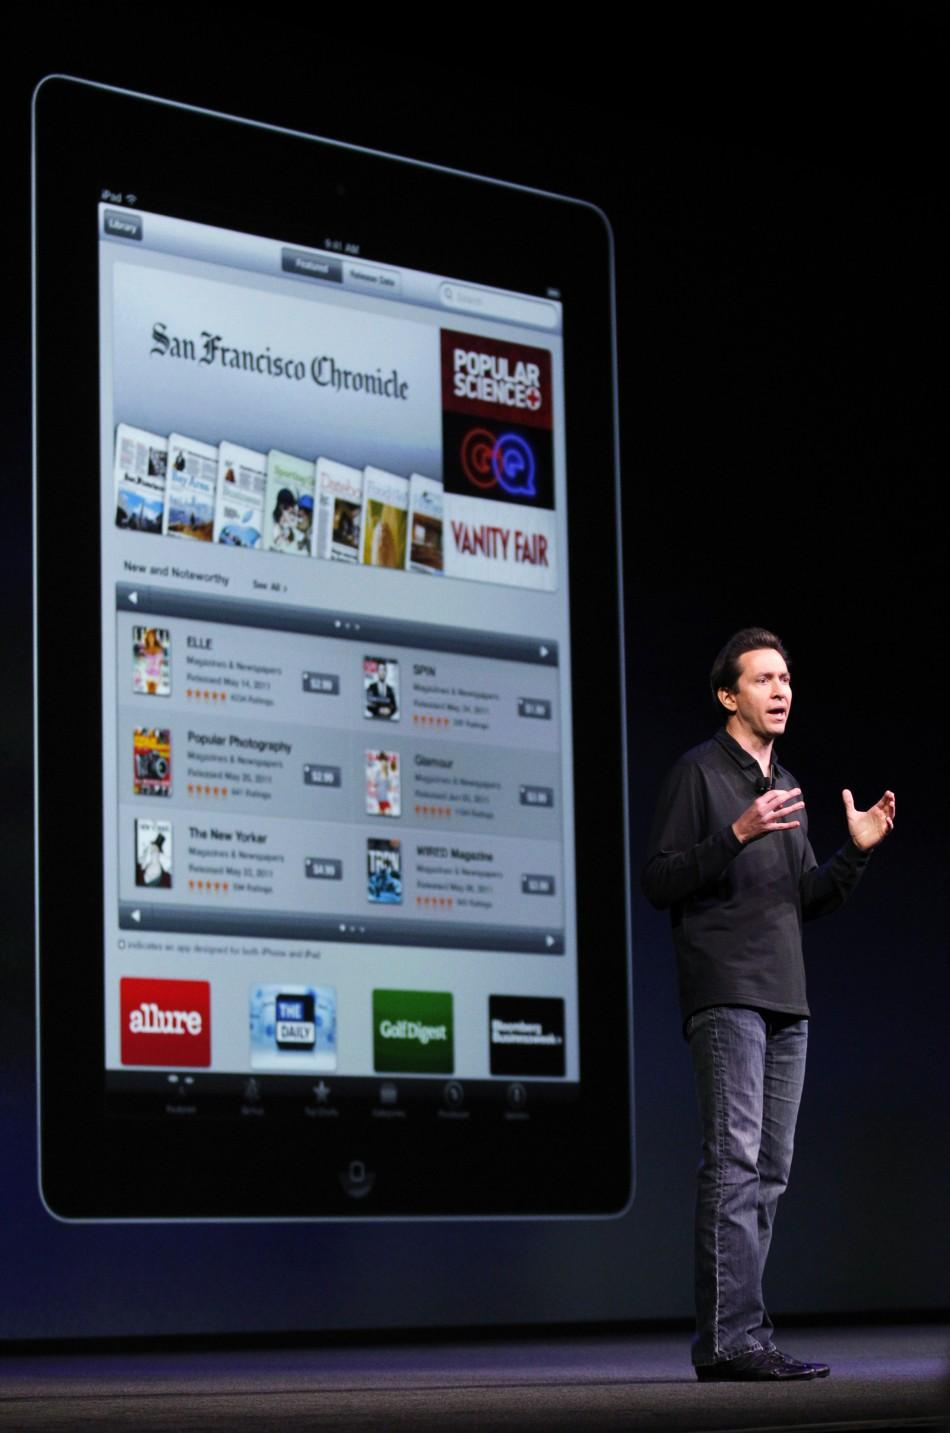 Scott Forstall, Senior Vice President of iOS Software at Apple Inc., talks about iOS5 for the iPhone at WWDC